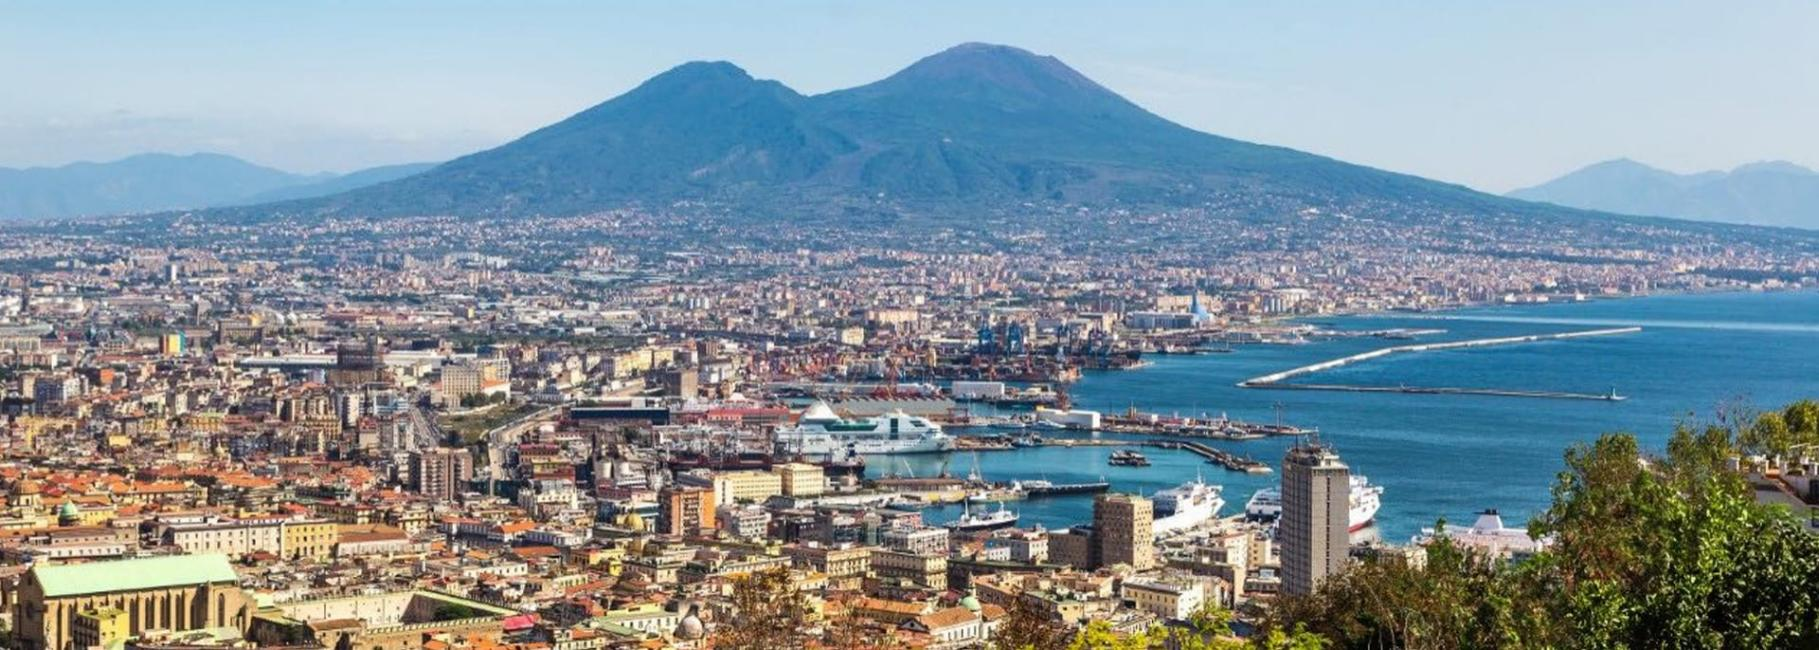 bay of naples geography trip header slk fe